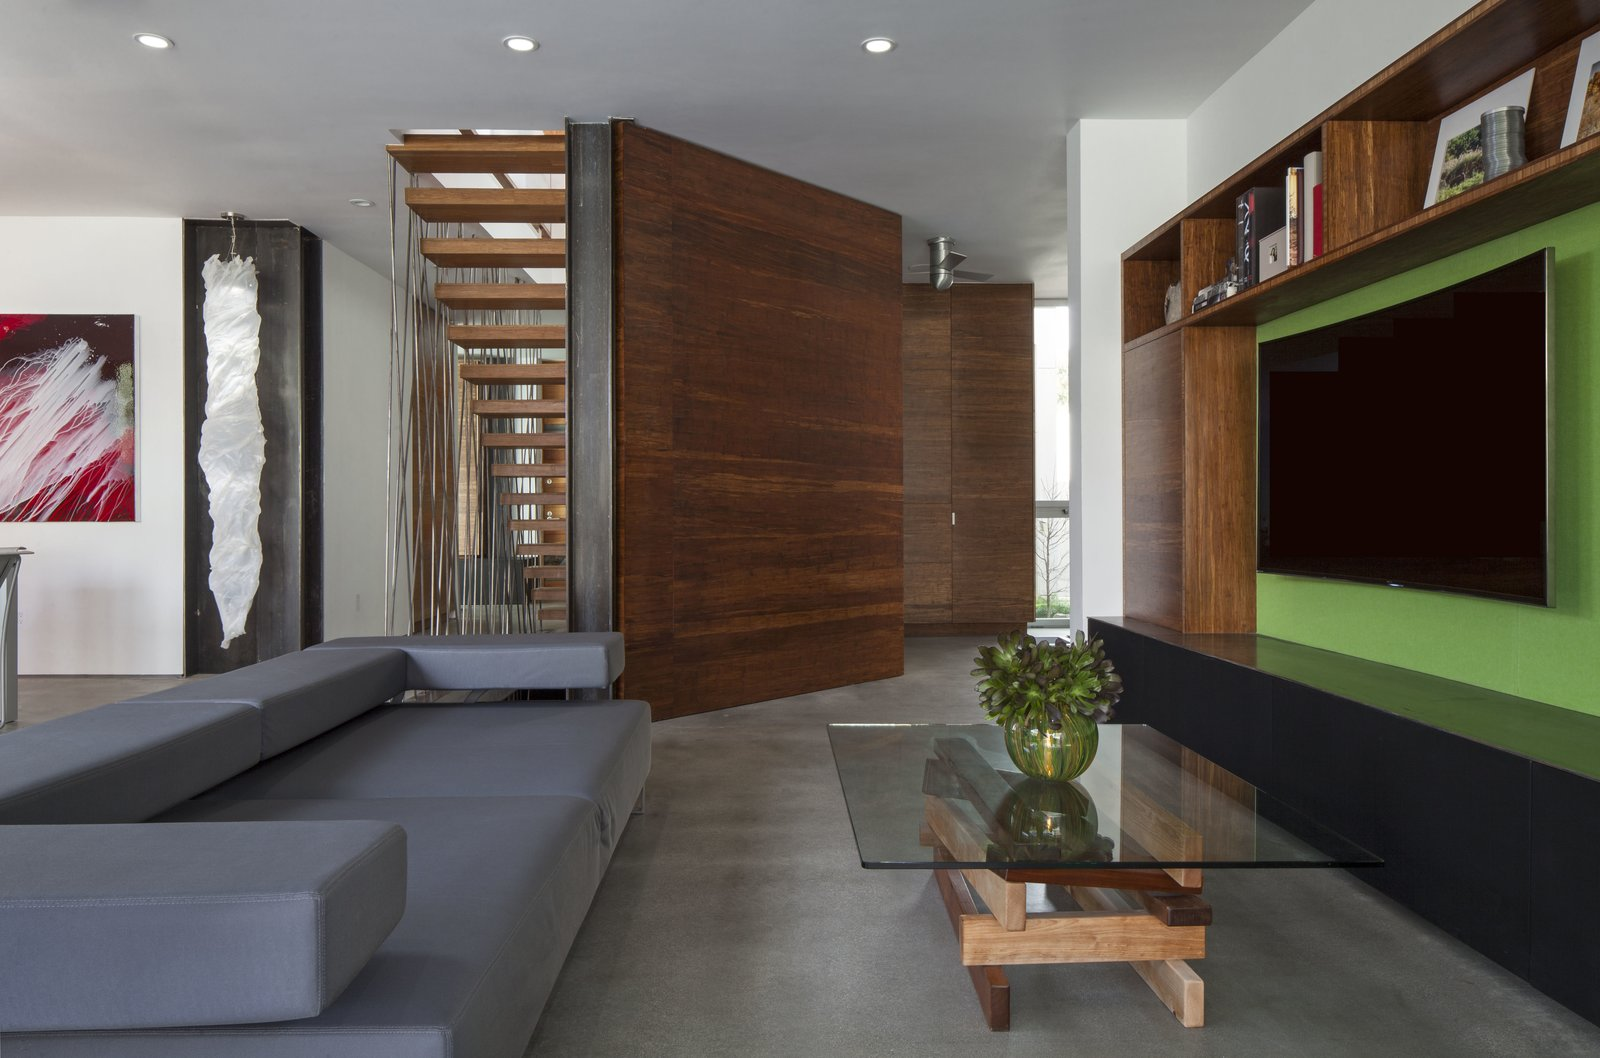 Living Room, Concrete Floor, Coffee Tables, Sofa, Recessed Lighting, Bookcase, Shelves, and Storage  Dawnsknoll by Minarc